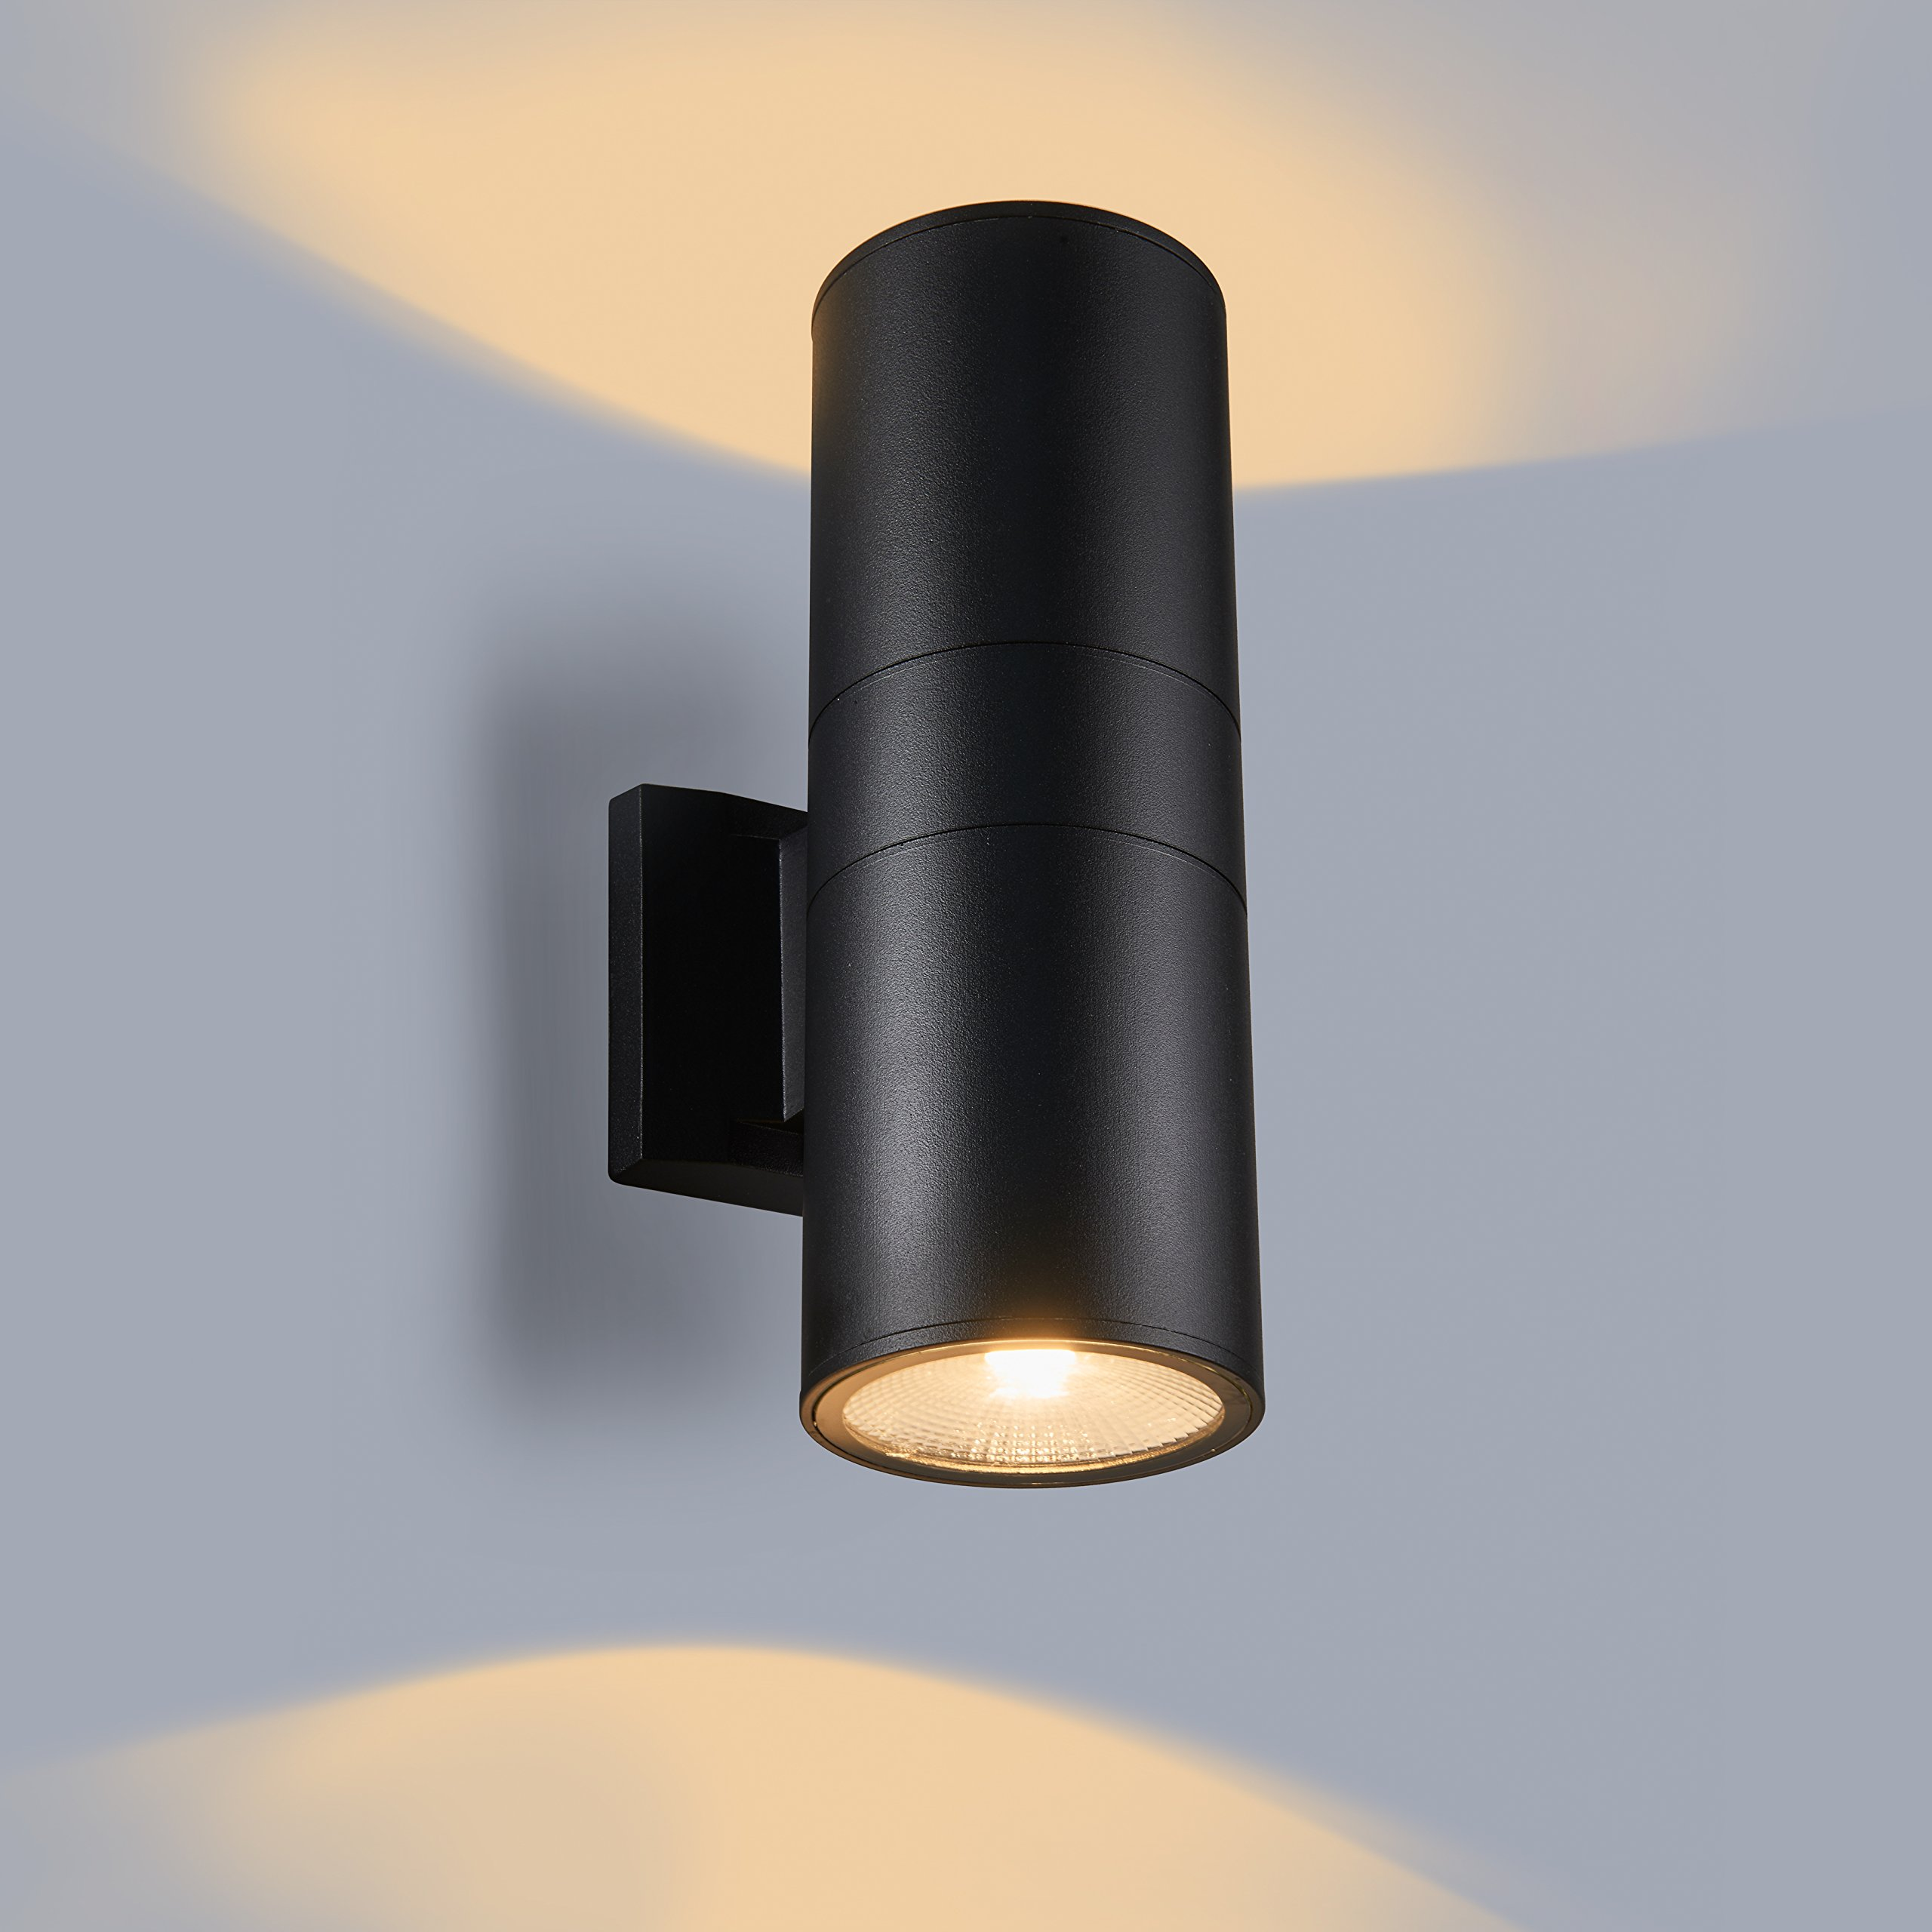 MICSIU Two-Light Wall Sconce, LED Aluminum Wall Mount for Either Outdoor and Indoor use. Outdoor Wall Lamp. UL Listed. Textured Black(up/Down Light)